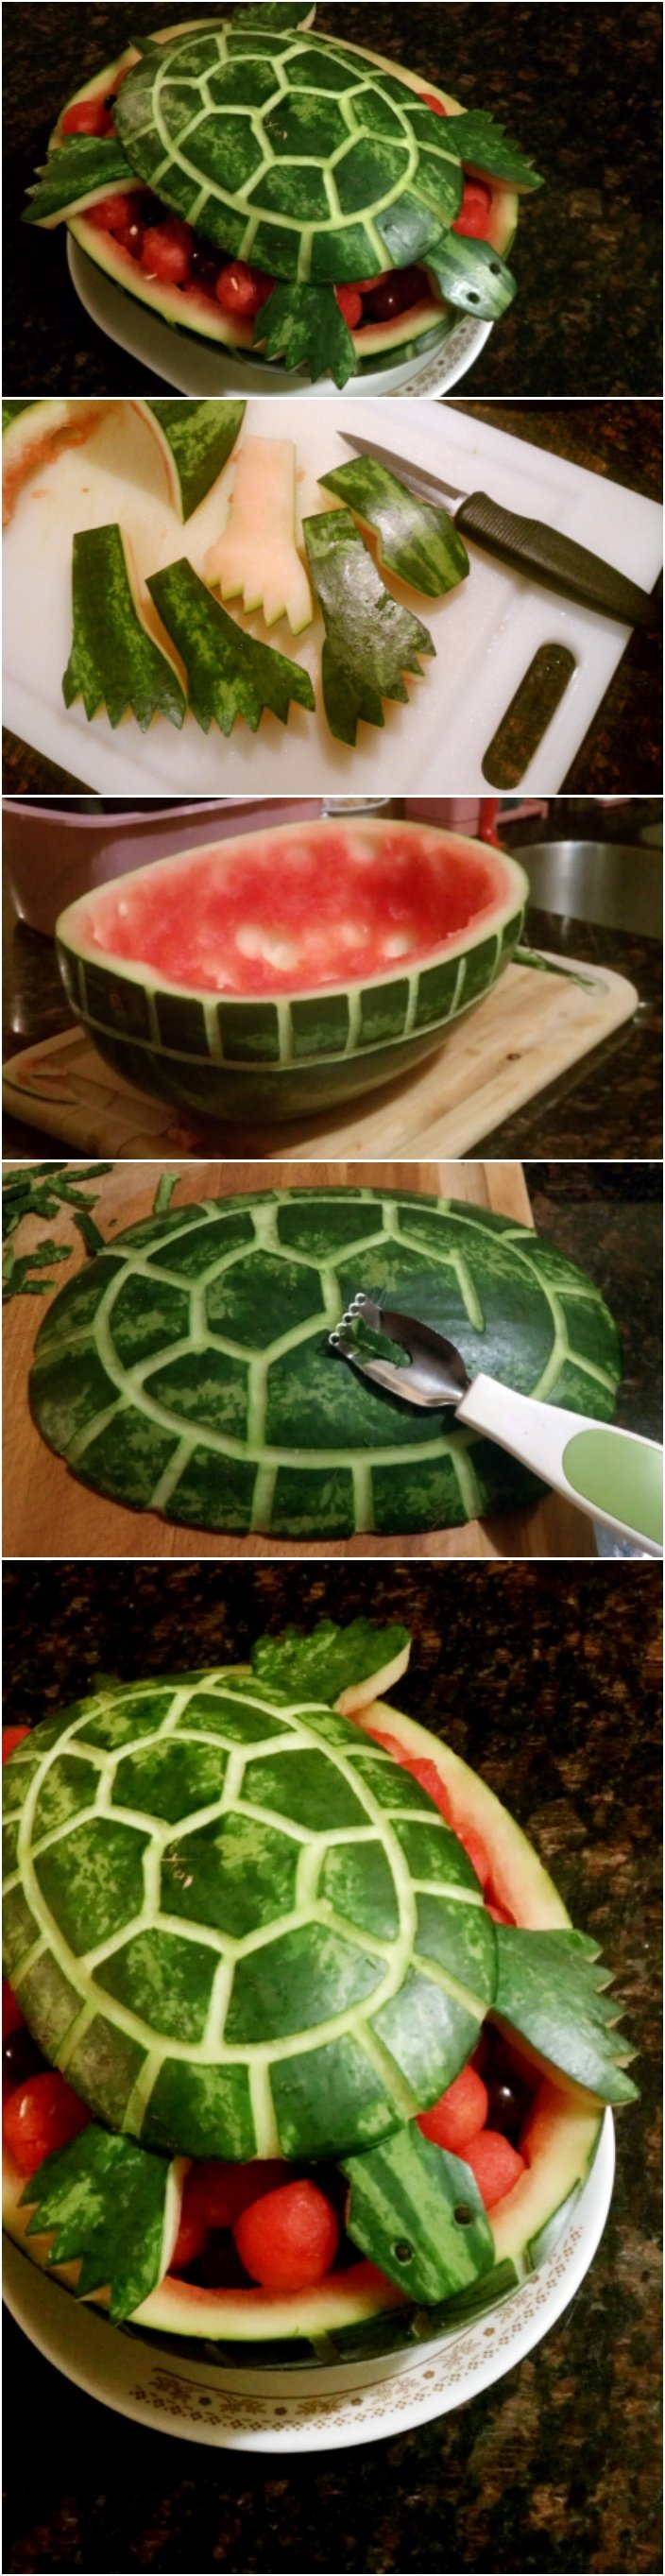 Watermelon carving ideas and tutorials page of